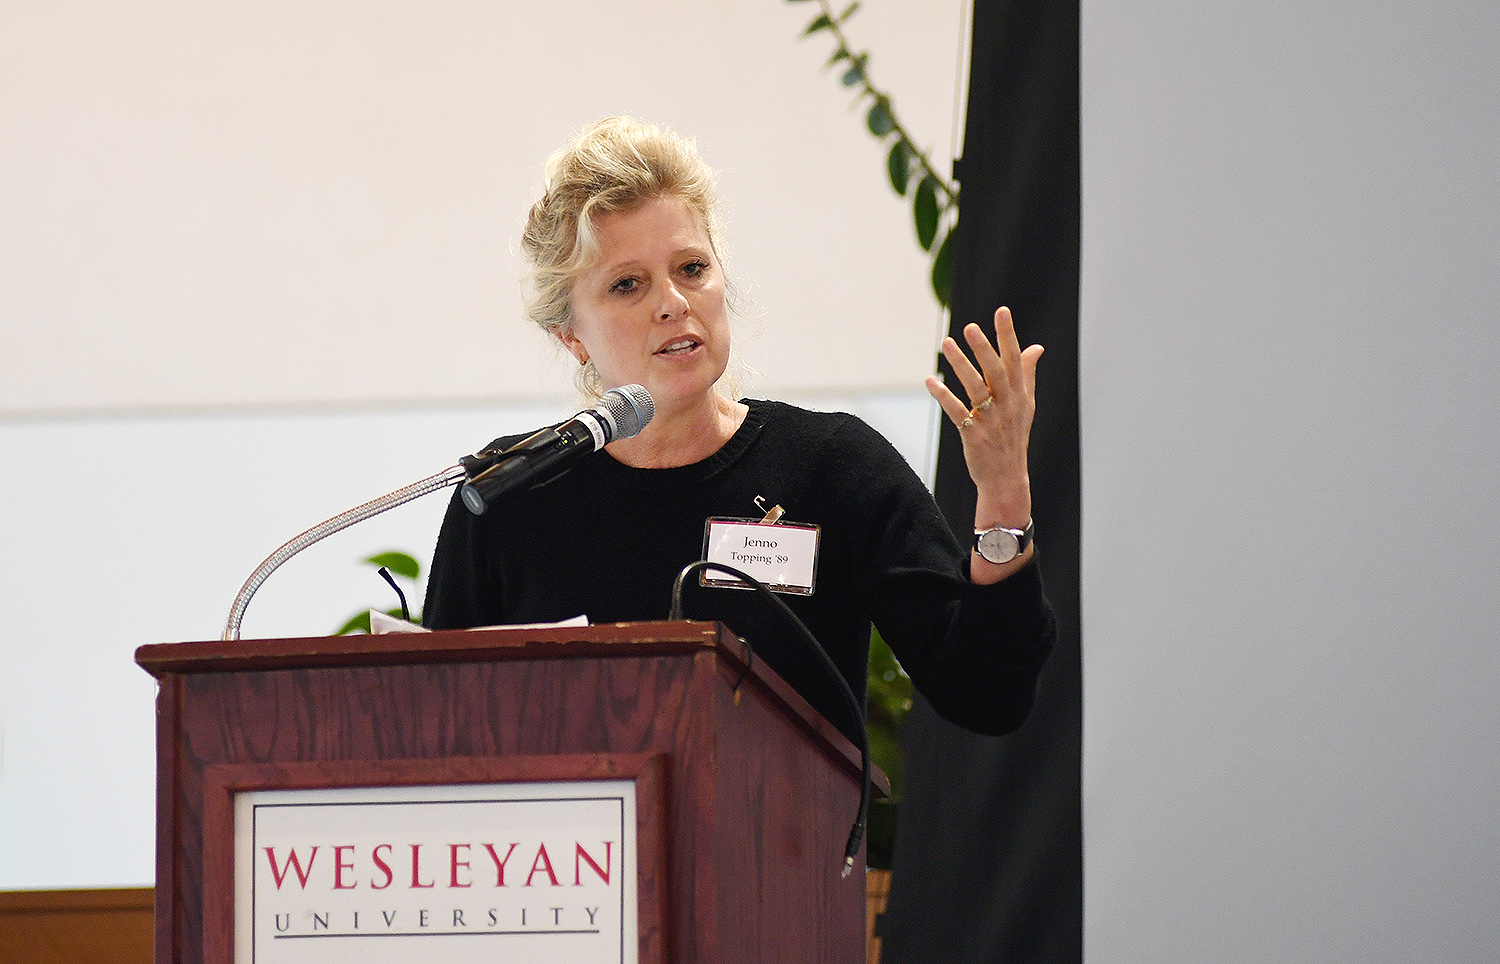 Oscar-nominated producer Jenno Topping '89, president of Film and Television at Chernin Entertainment, delivered the Alumni Keynote Speech on April 13. Topping has been involved in numerous feature films during her tenure at Charnin Entertainment including: Hidden Figures, The Greatest Showman, War for the Planet of the Apes, Red Sparrow, The Mountain Between Us, Miss Peregrine's Home for Peculiar Children,The Heat and more.